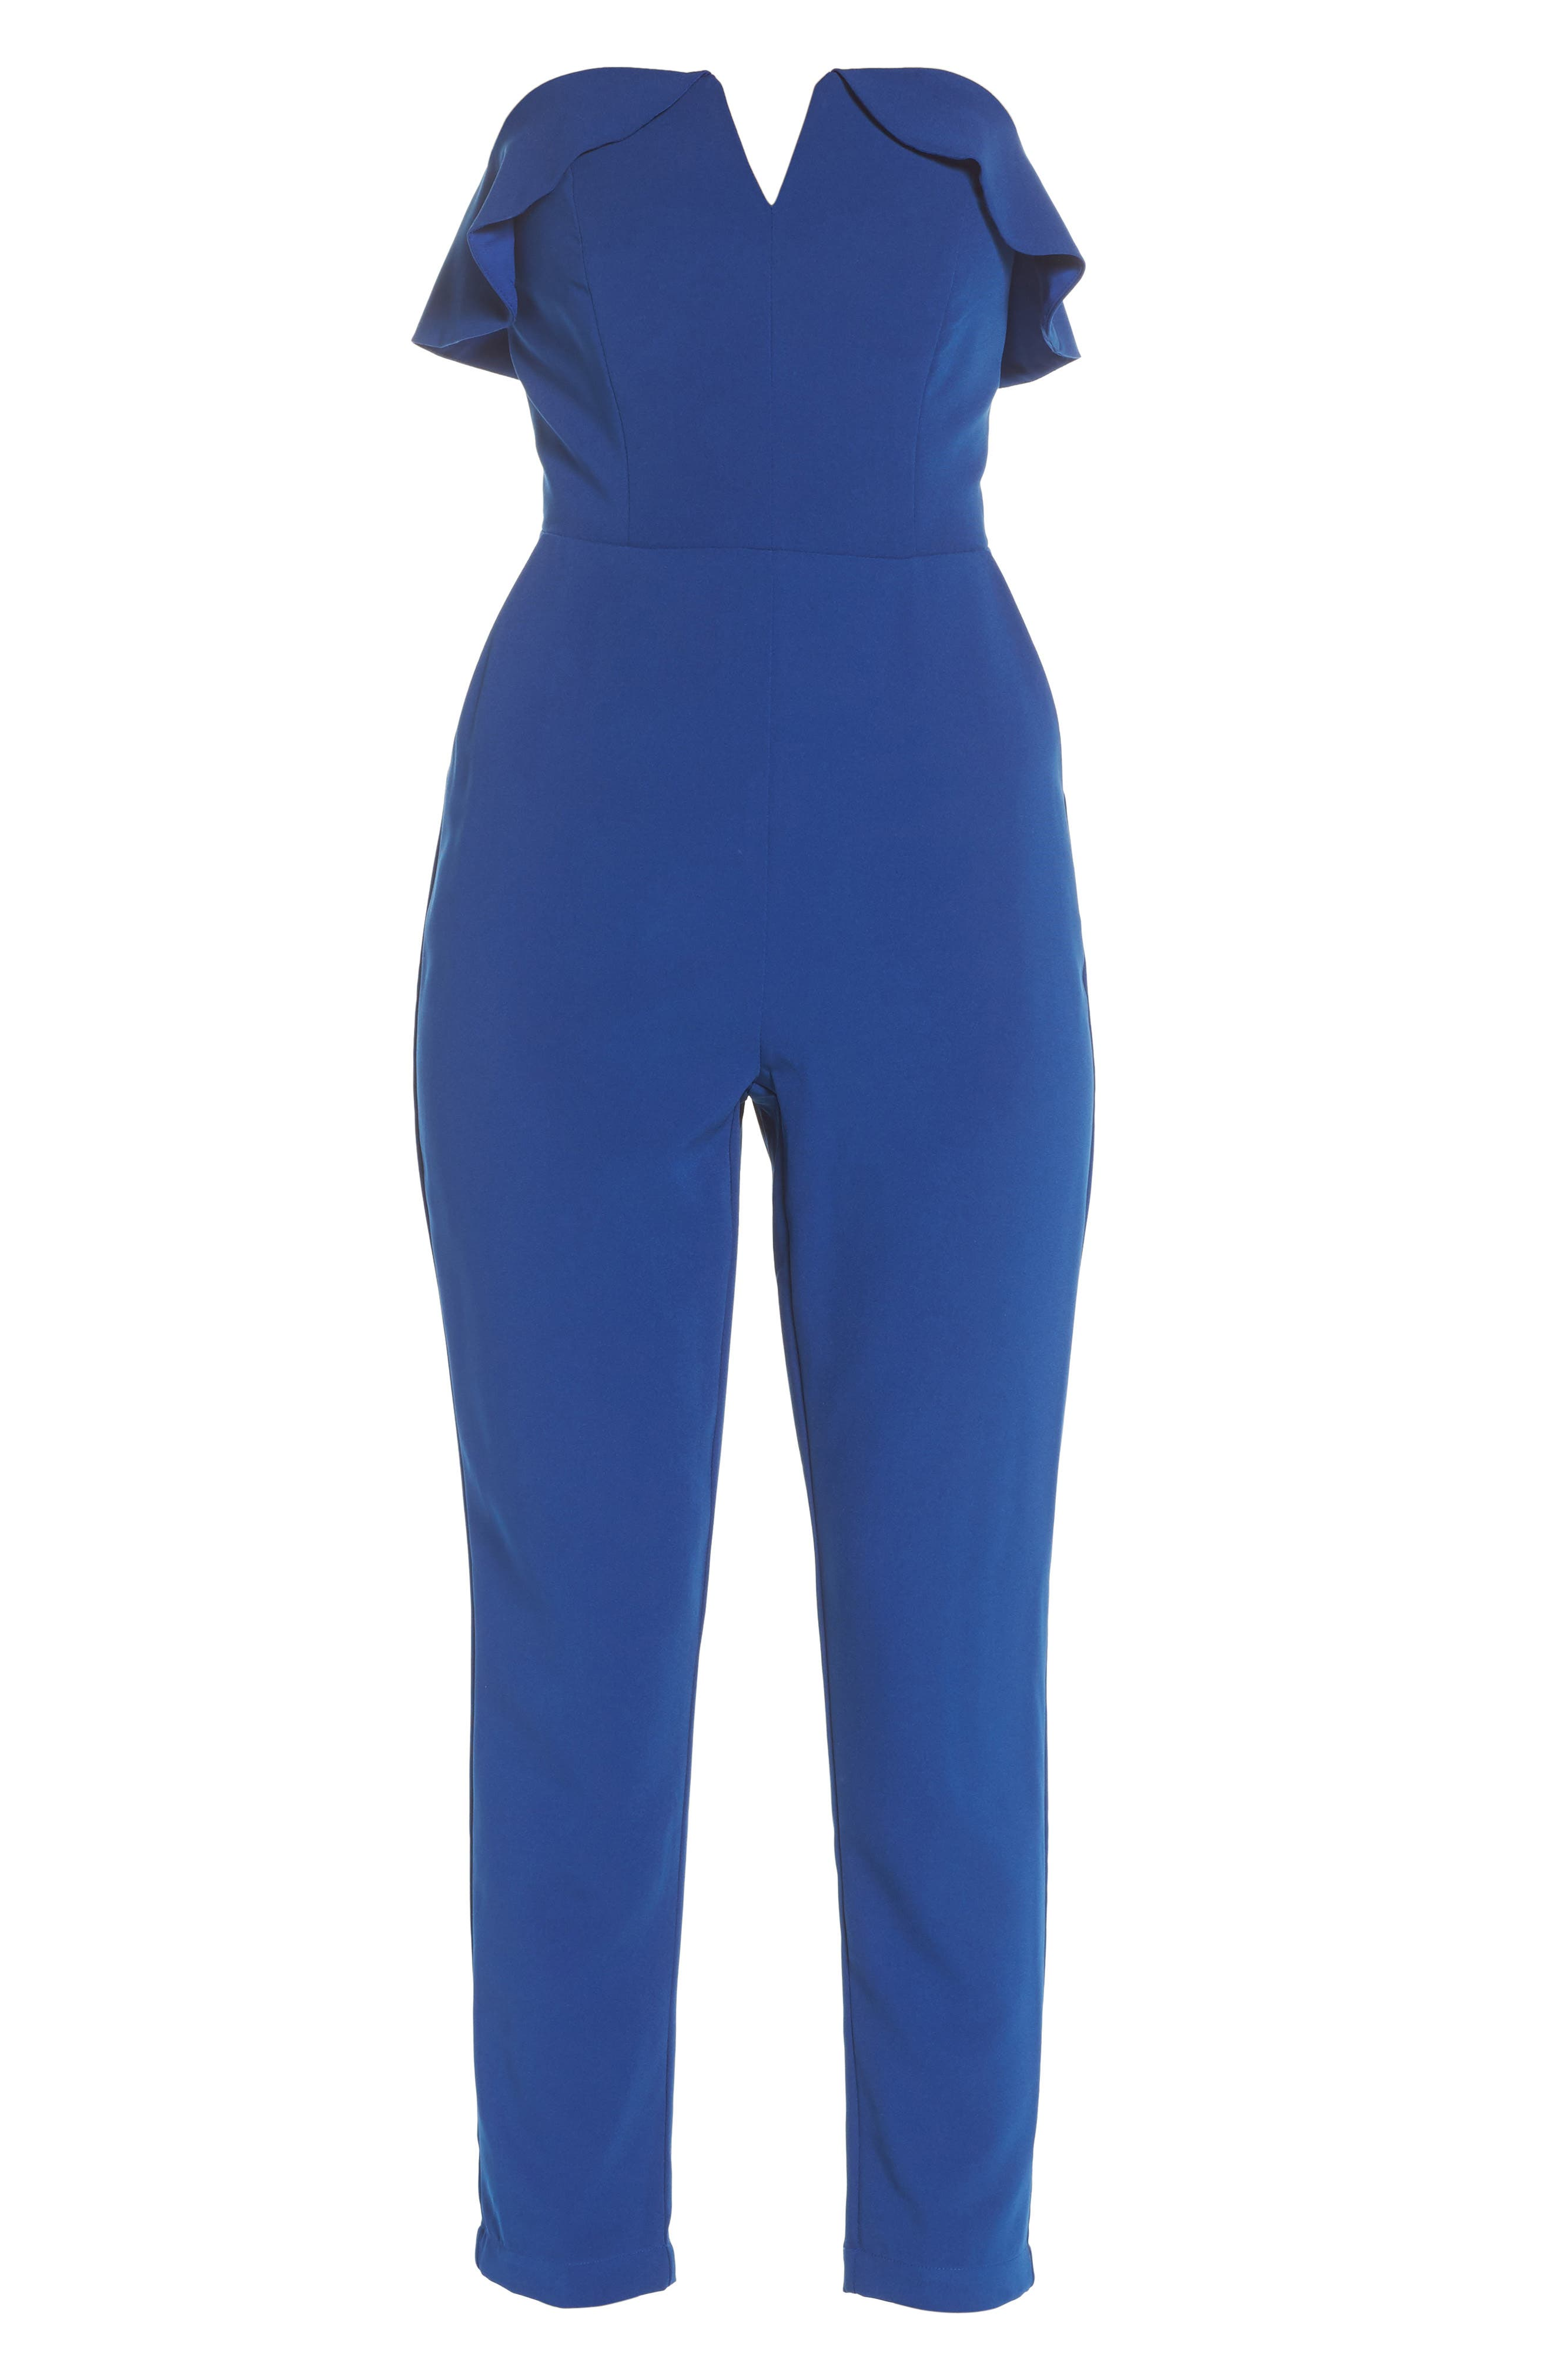 Penny Strapless Jumpsuit,                             Alternate thumbnail 6, color,                             400